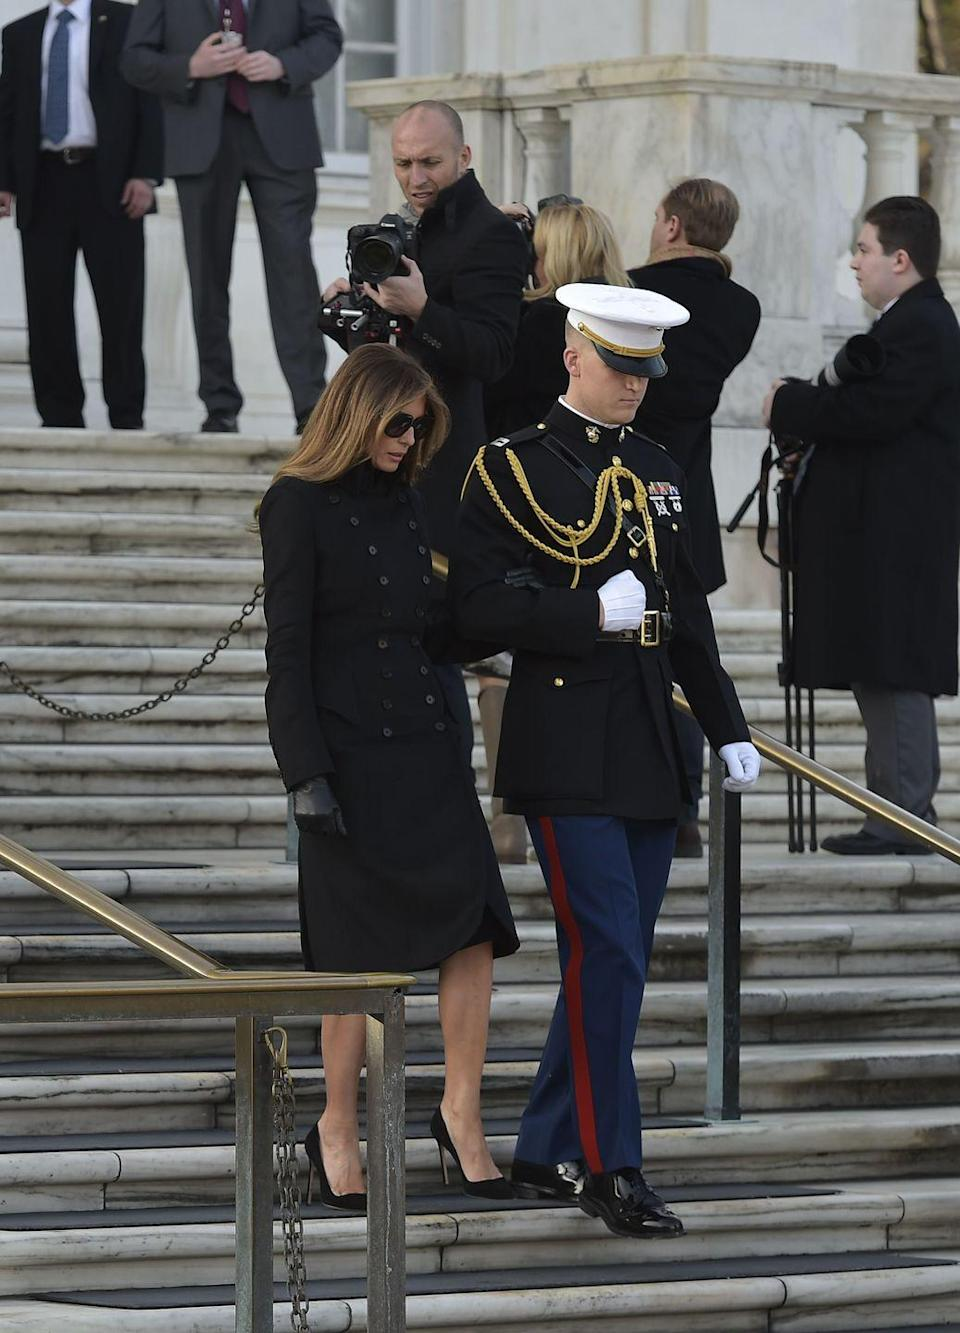 "<p>Melania opted for a pair of Gucci sunnies while visiting Arlington National Cemetery, and <a href=""https://www.yahoo.com/lifestyle/melania-trumps-gucci-sunglasses-spark-questions-on-social-media-215140264.html"" data-ylk=""slk:Twitter was definitely not pleased;outcm:mb_qualified_link;_E:mb_qualified_link;ct:story;"" class=""link rapid-noclick-resp yahoo-link"">Twitter was definitely not pleased</a>. The American people saw them as a sign of disrespect (from the size of the sunglasses to the actual sunglasses themselves).</p>"